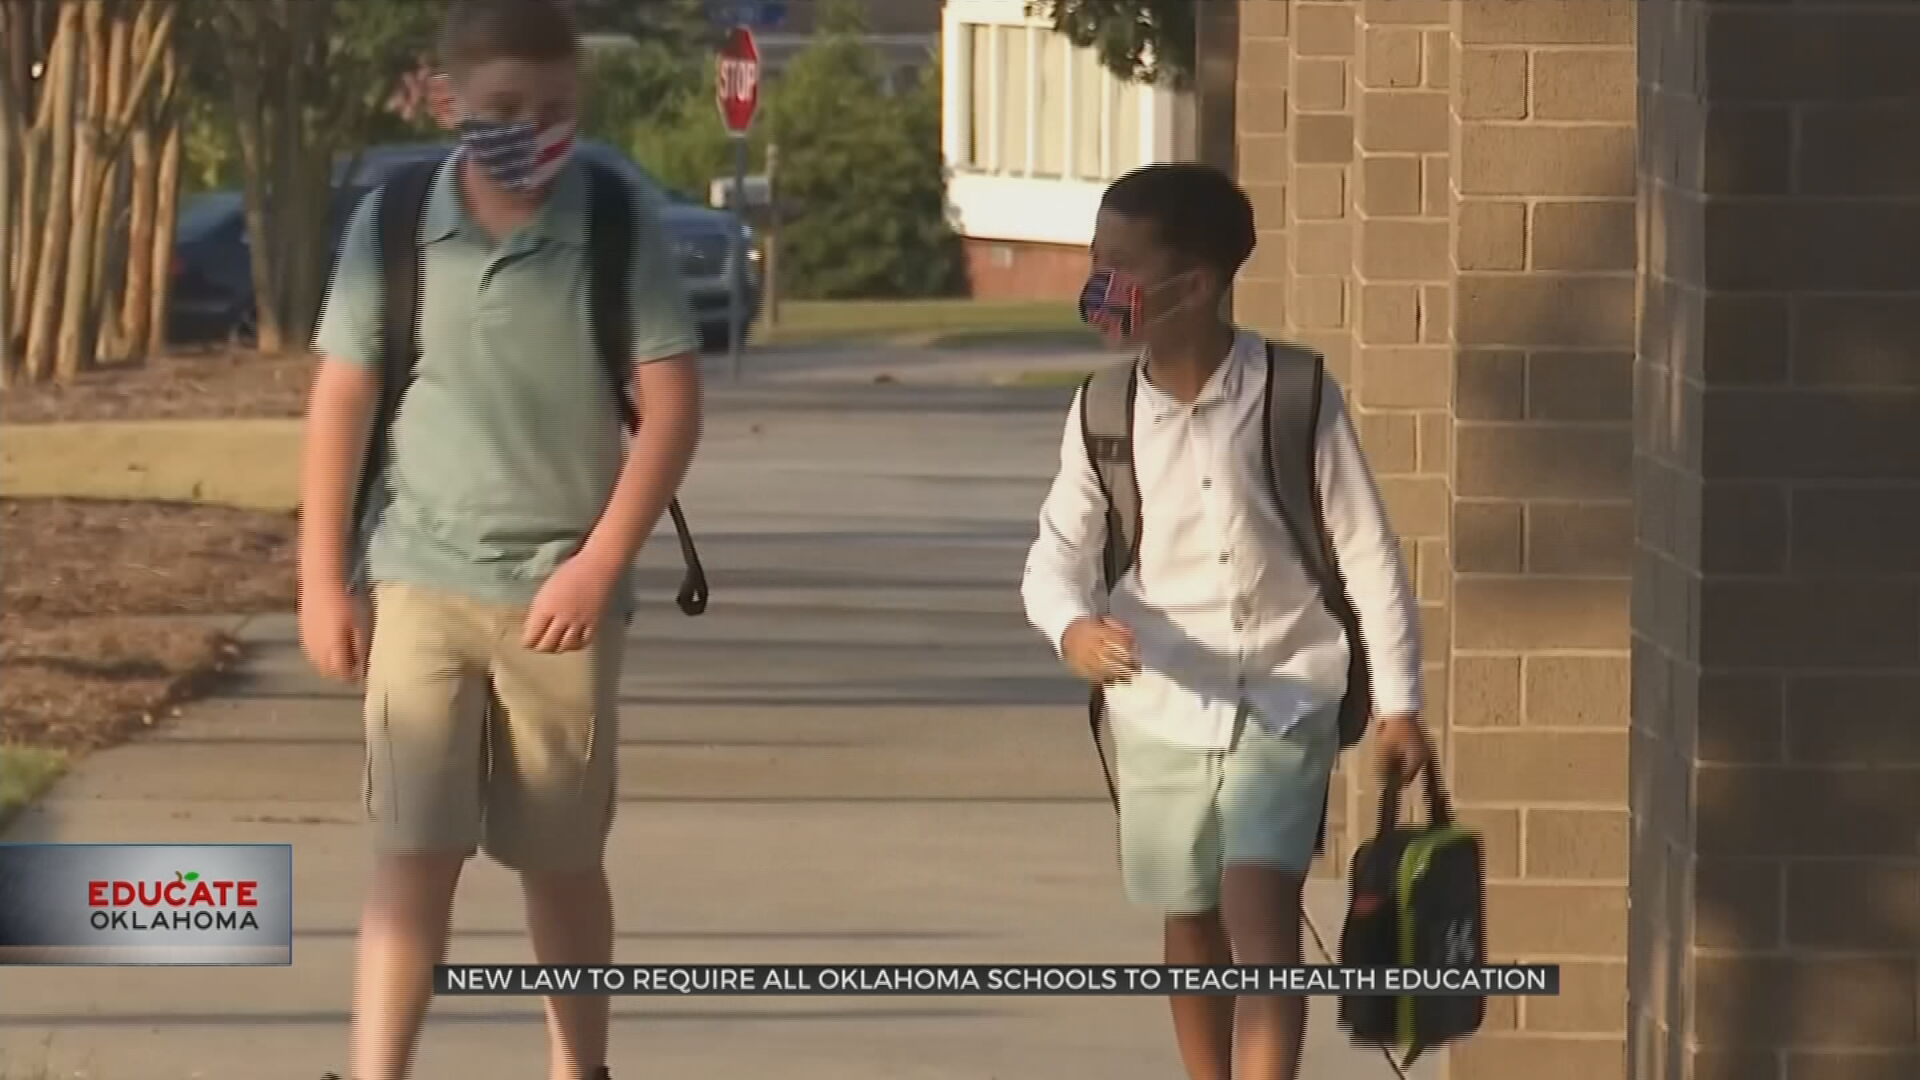 New Law Requires Health Education Across All Oklahoma Schools